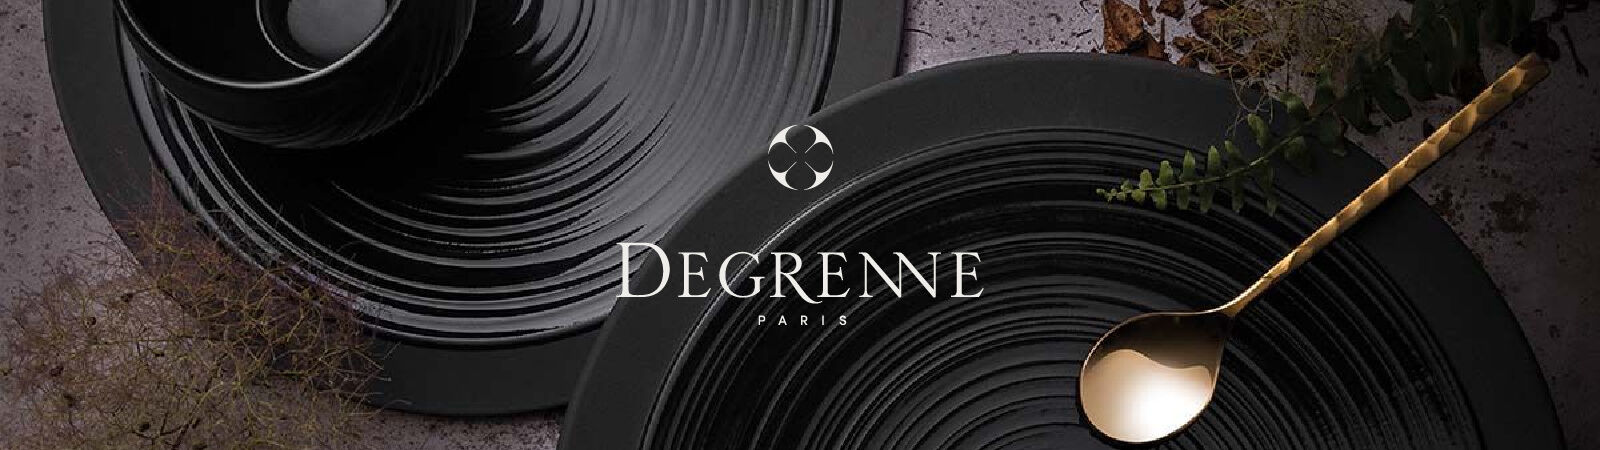 Degrenne French Kitchenware and Tableware available at Sportique.com